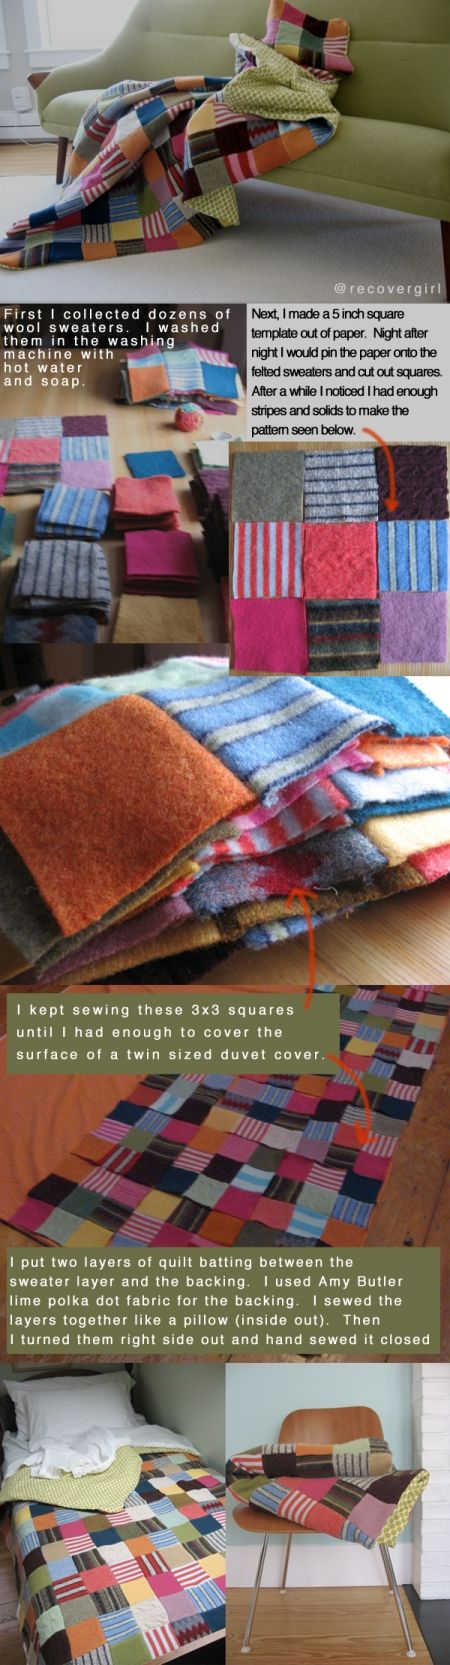 Felted sweater quilt.